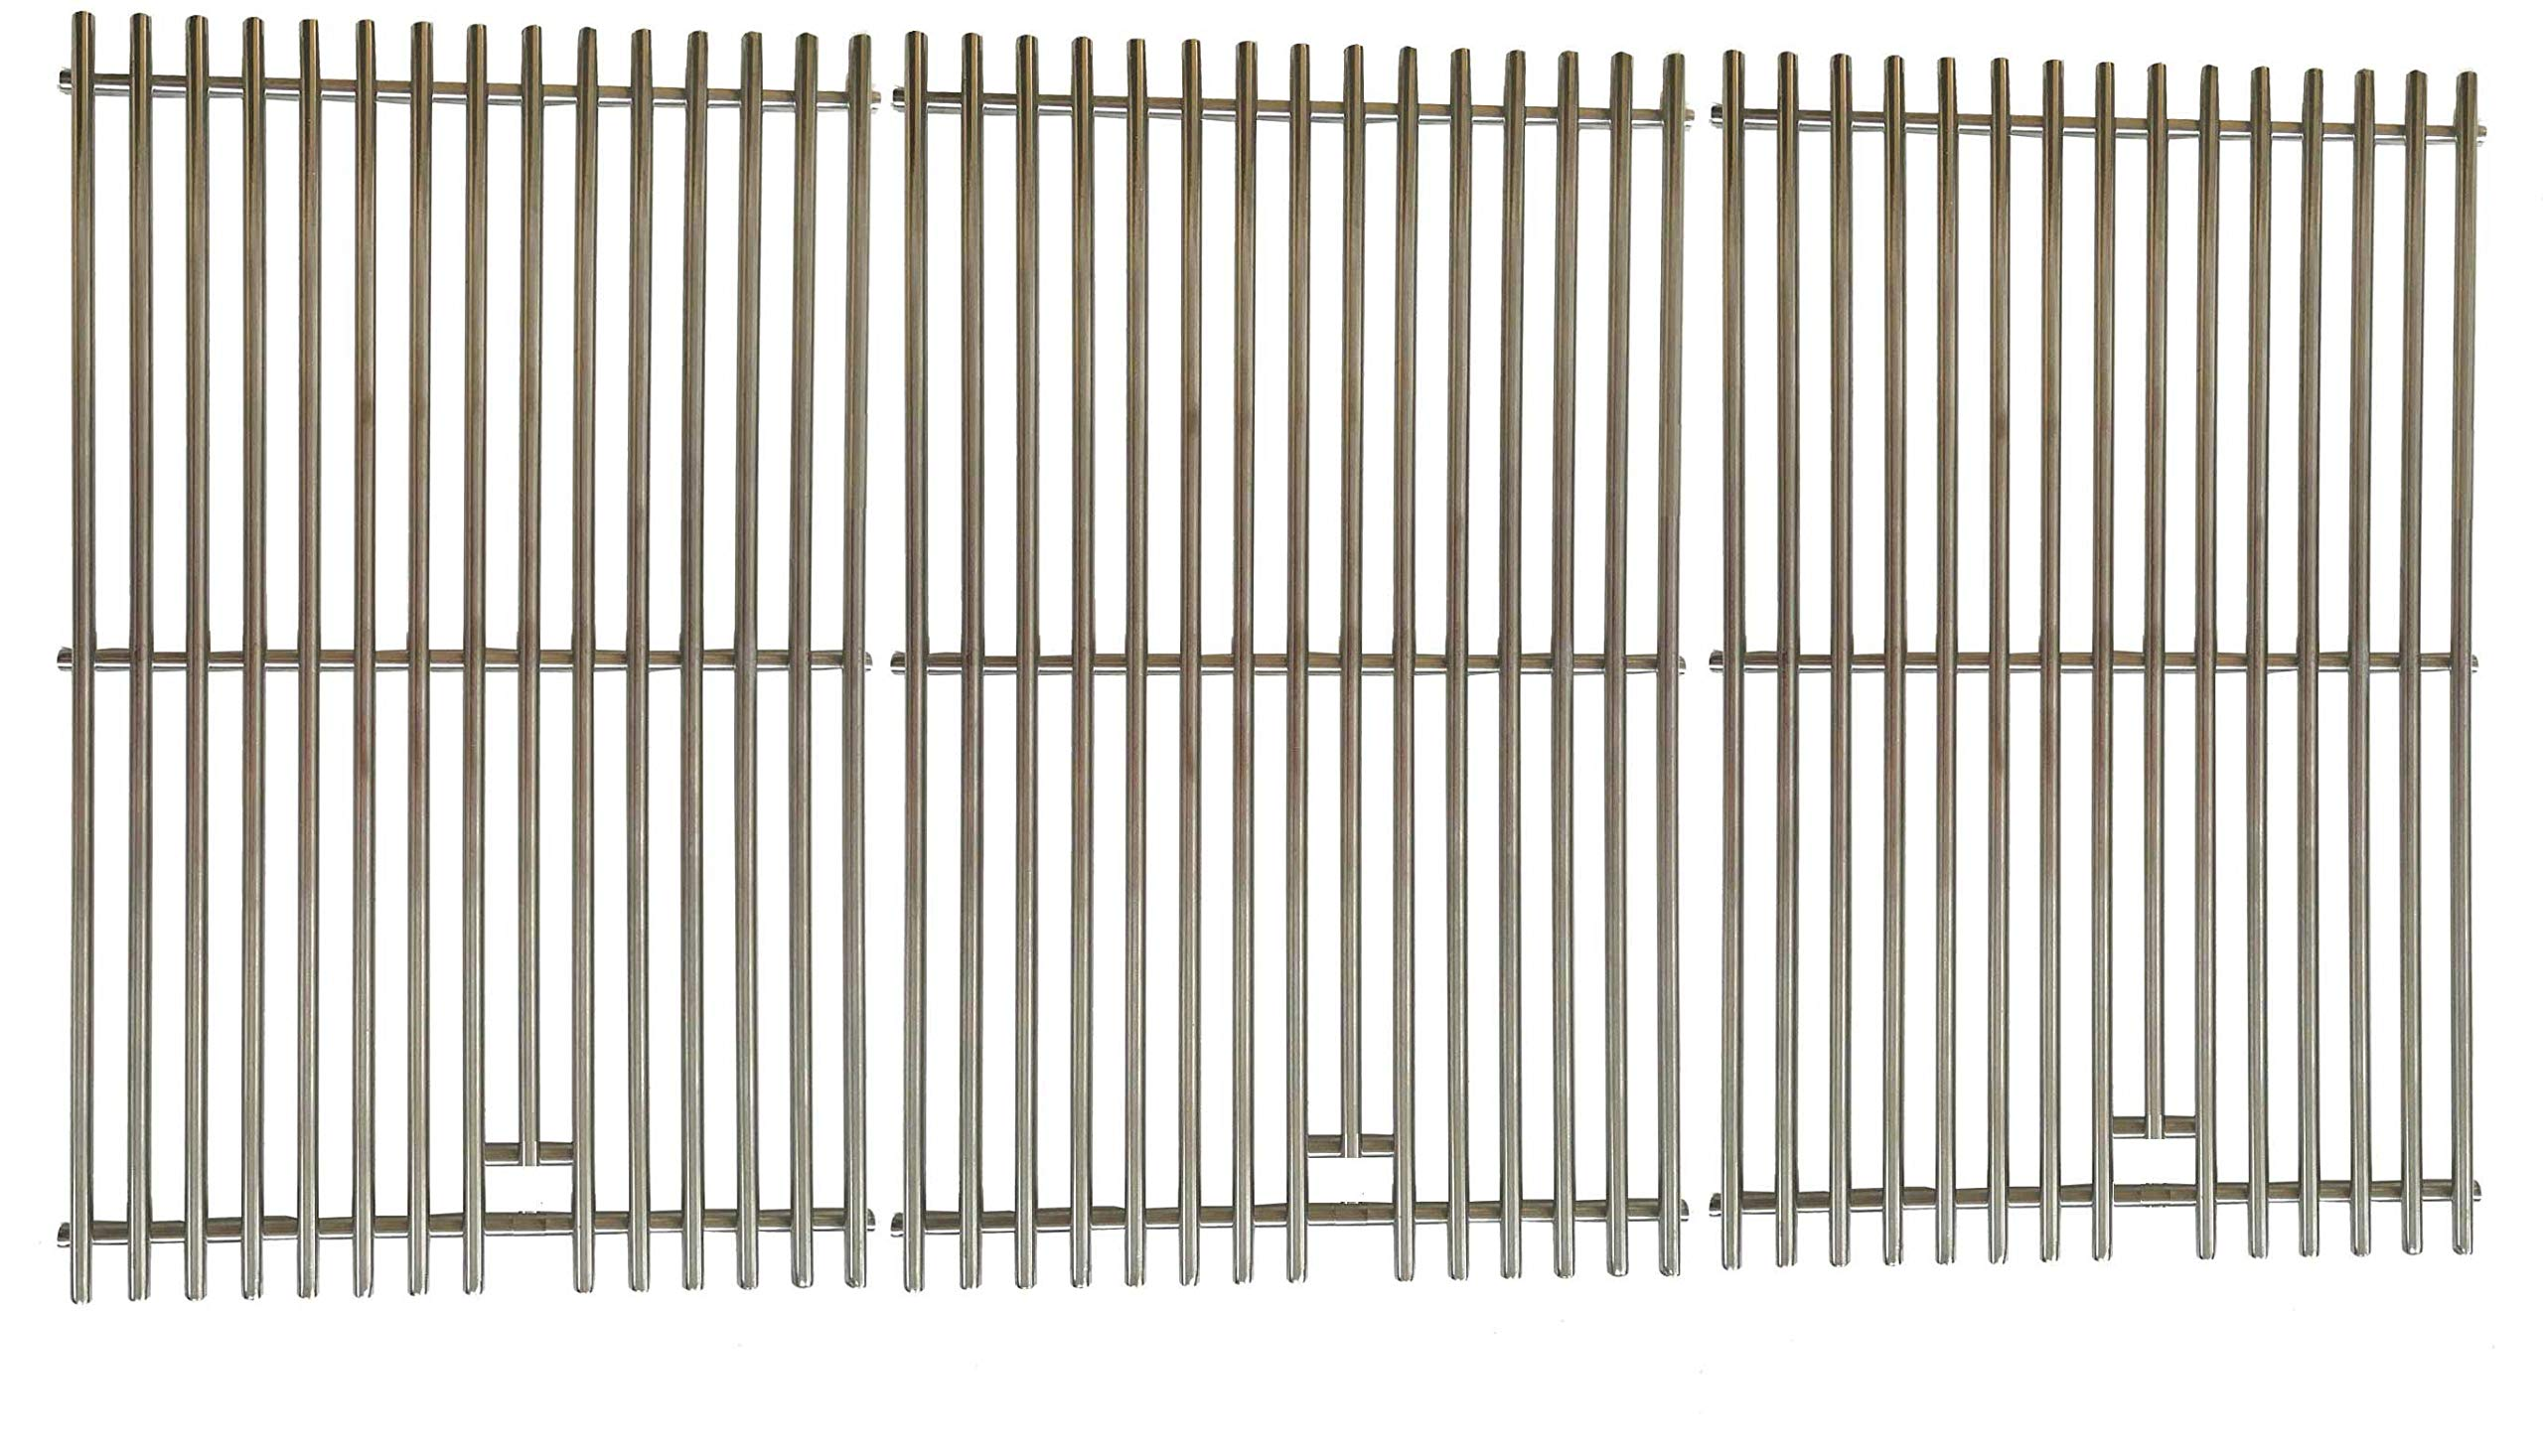 Jenn-Air 720-0337, 720-0586A, 720-0586A Gas Grill Repair Kit Includes 4 Stainless Heat Plates and 4 Stainless Steel Burners and Stainless Steel Grates by Grill Parts Zone (Image #4)